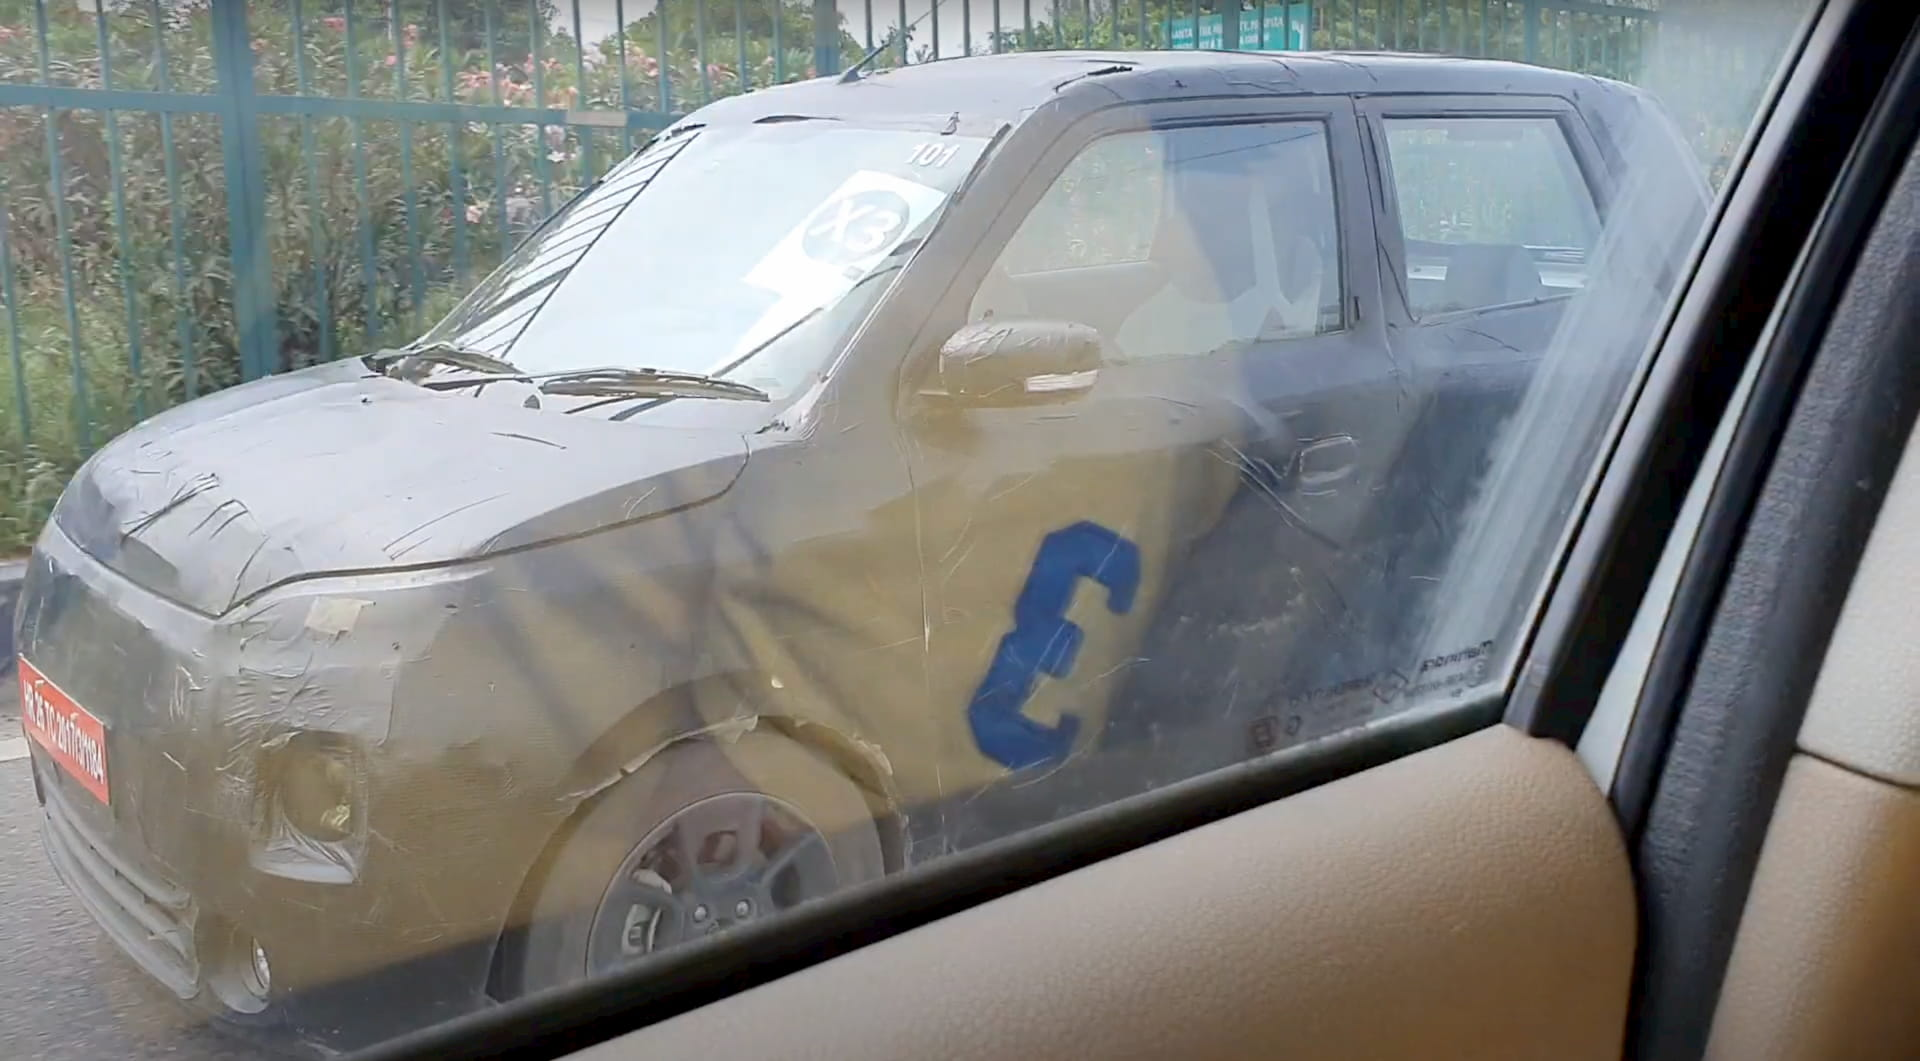 Maruti Wagon R-based Maruti electric car spy shot